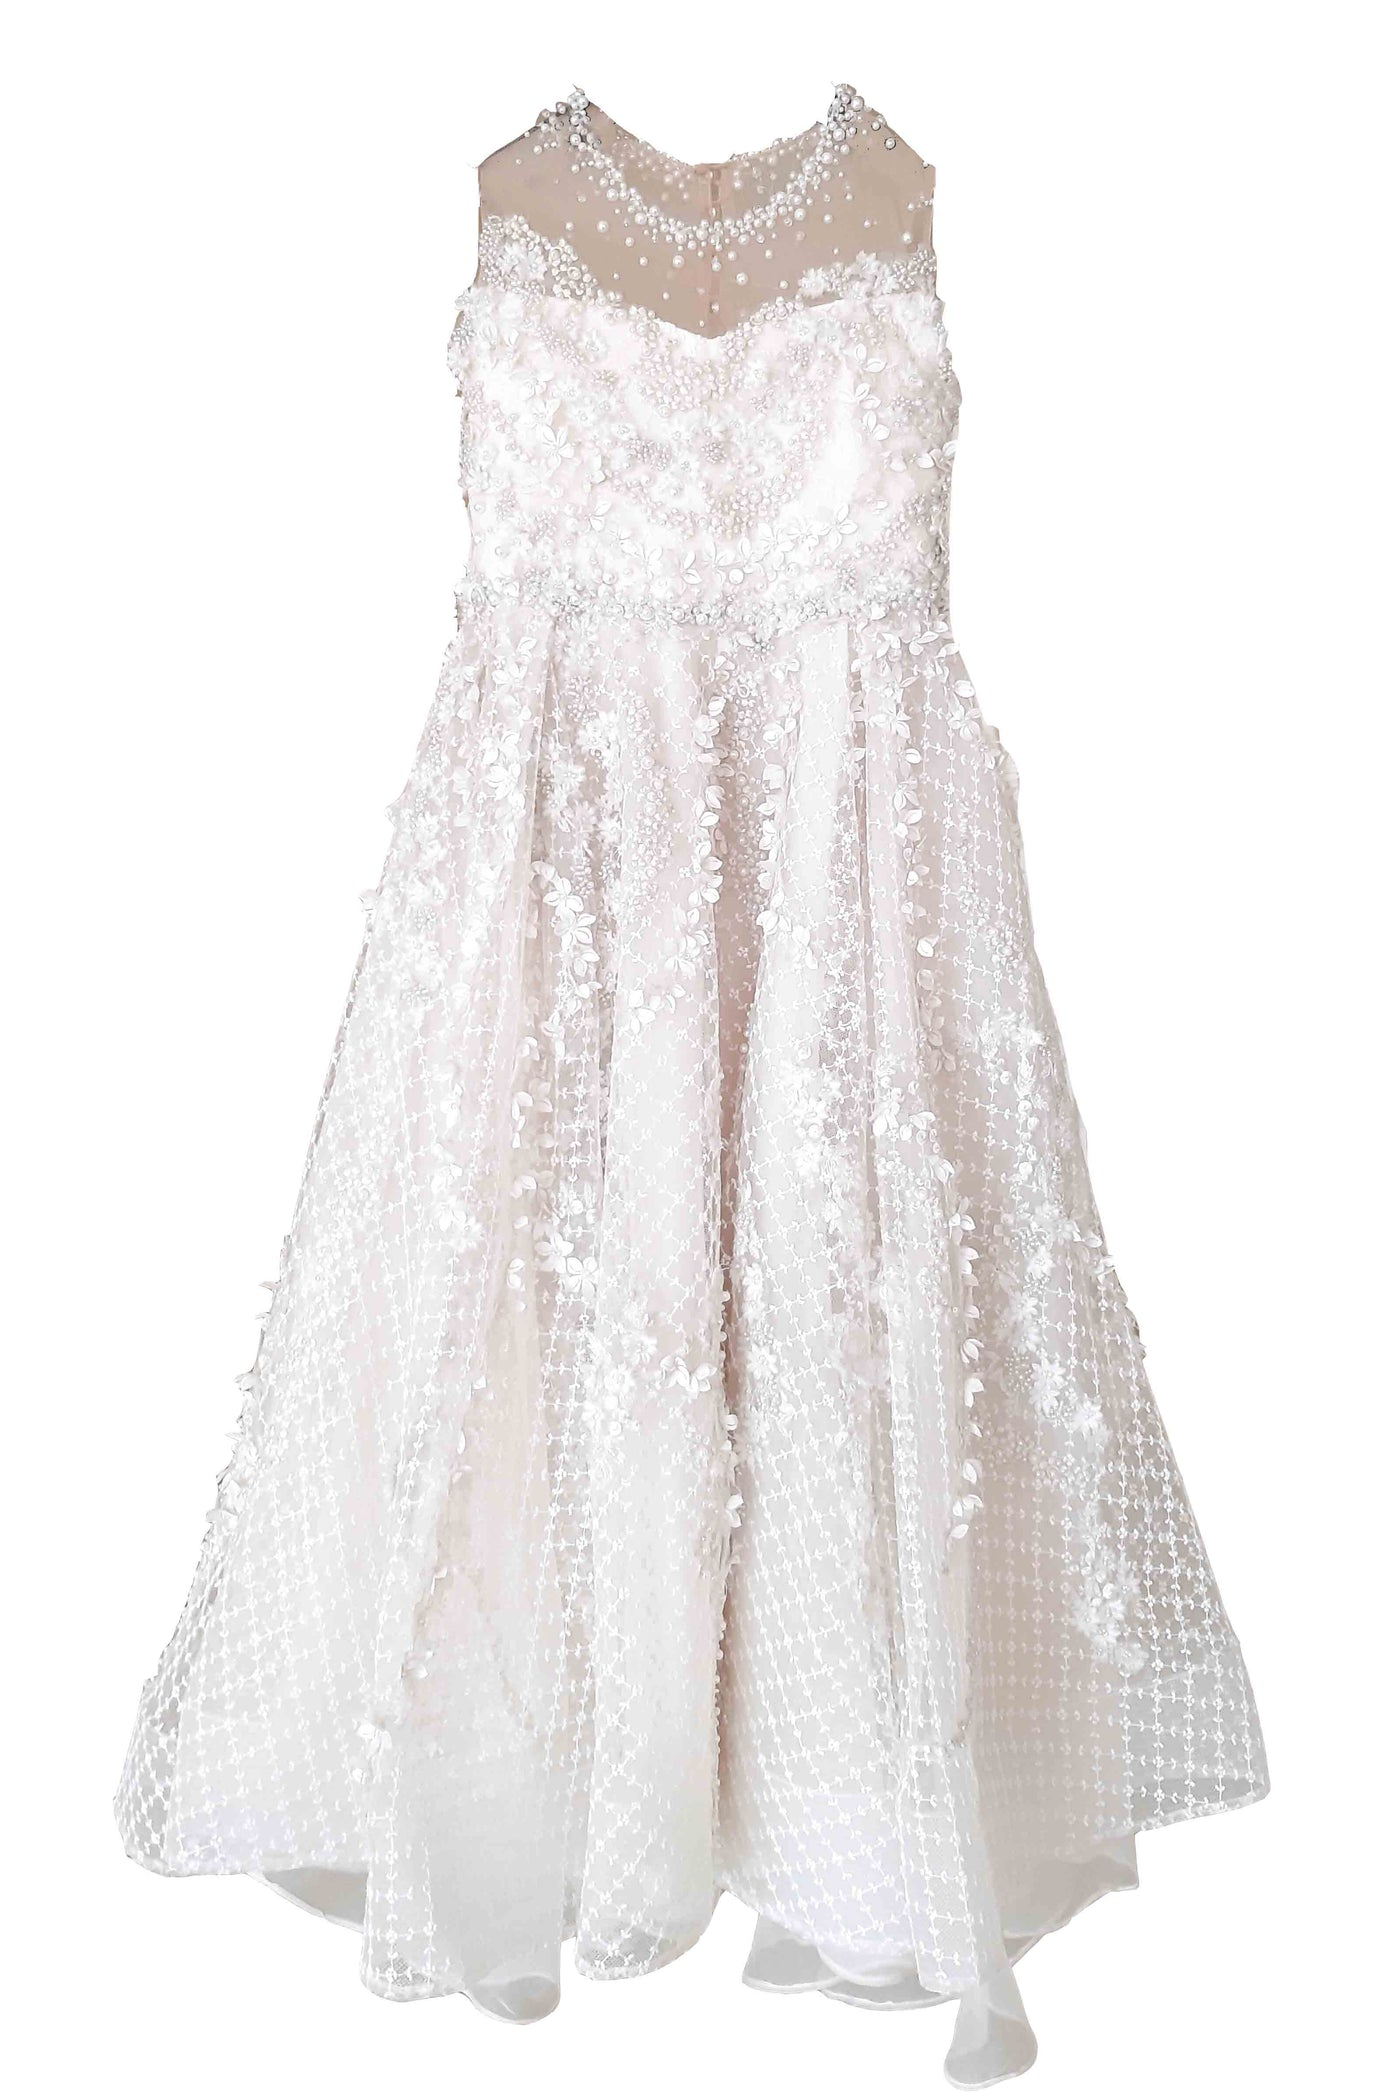 Rent : Diana Halim - White A Line Gown With Pearls And Bow